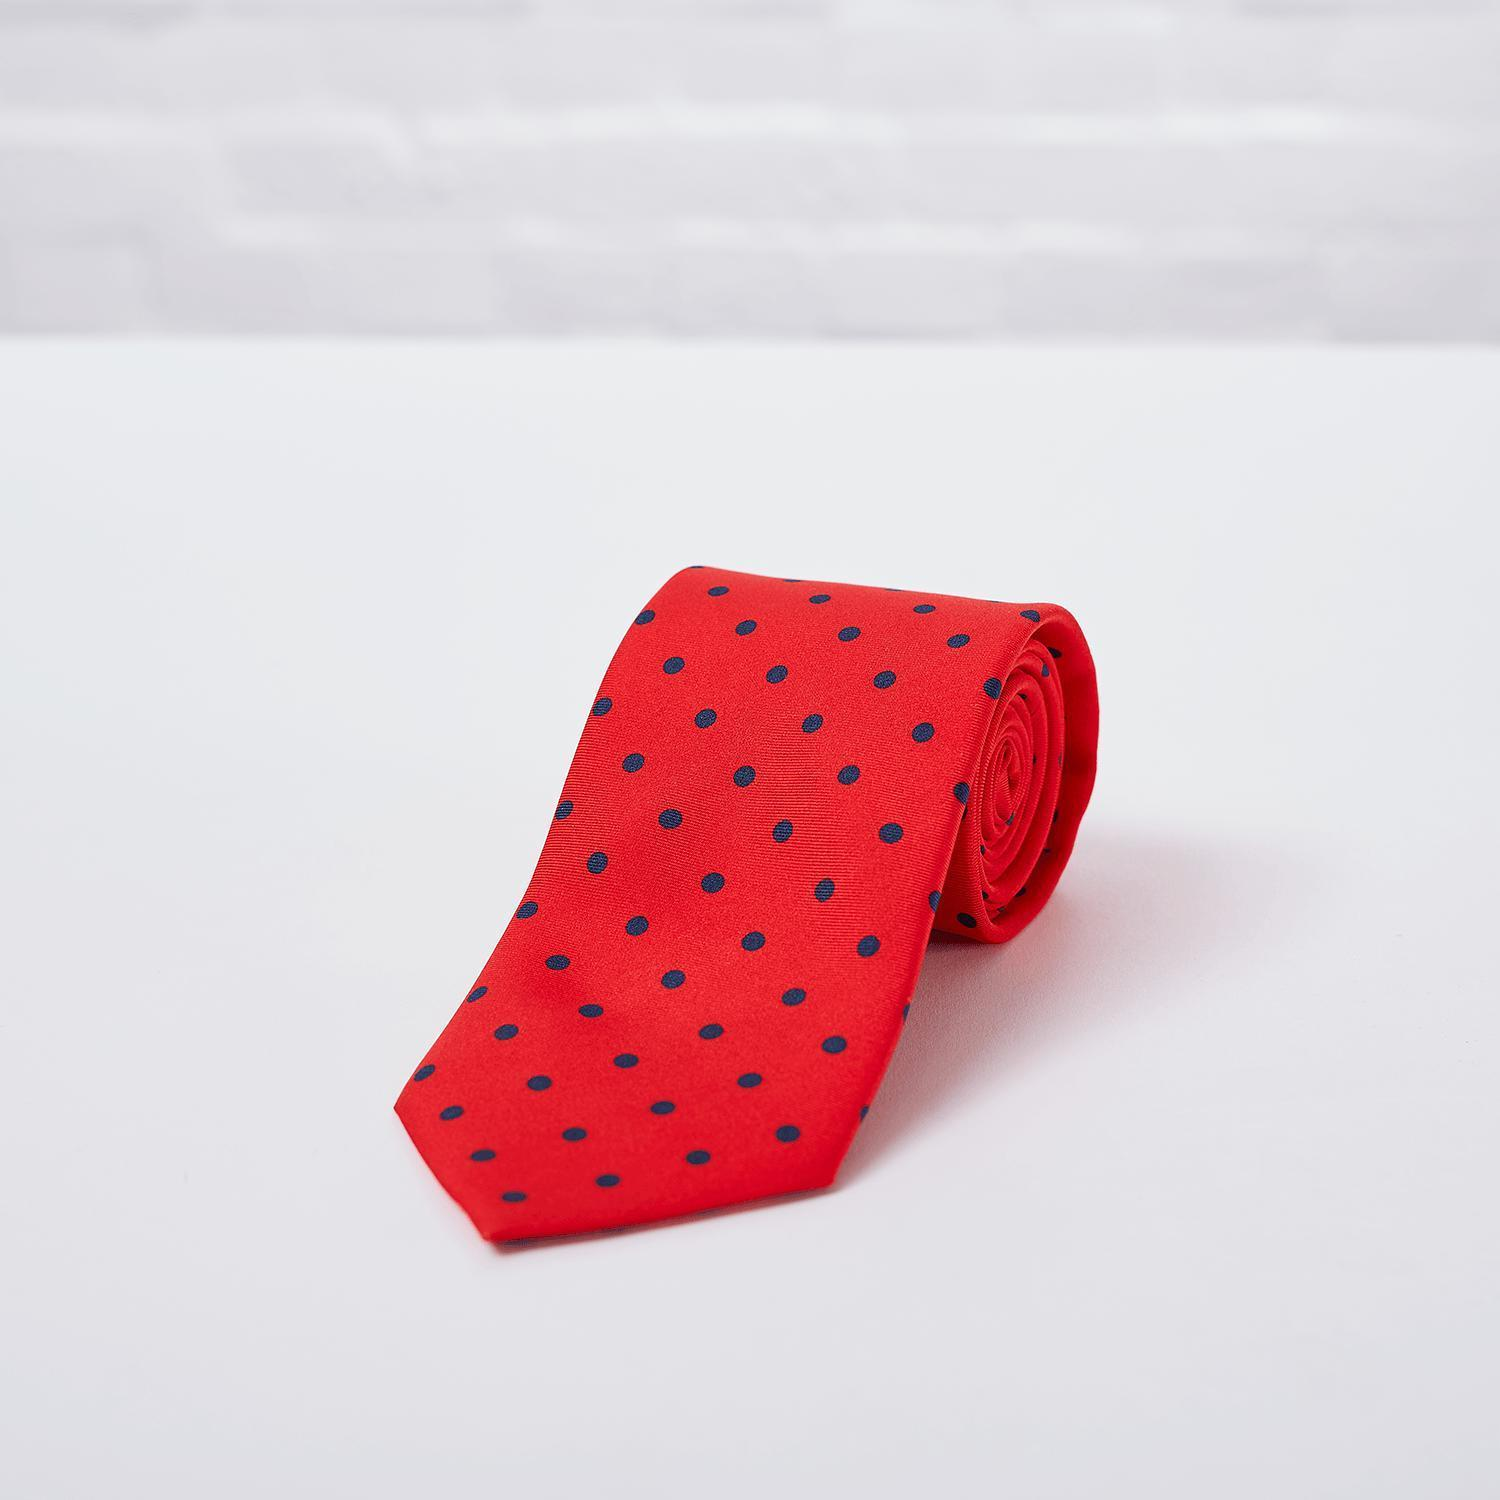 Red Large Spot Printed Silk Tie - British Made